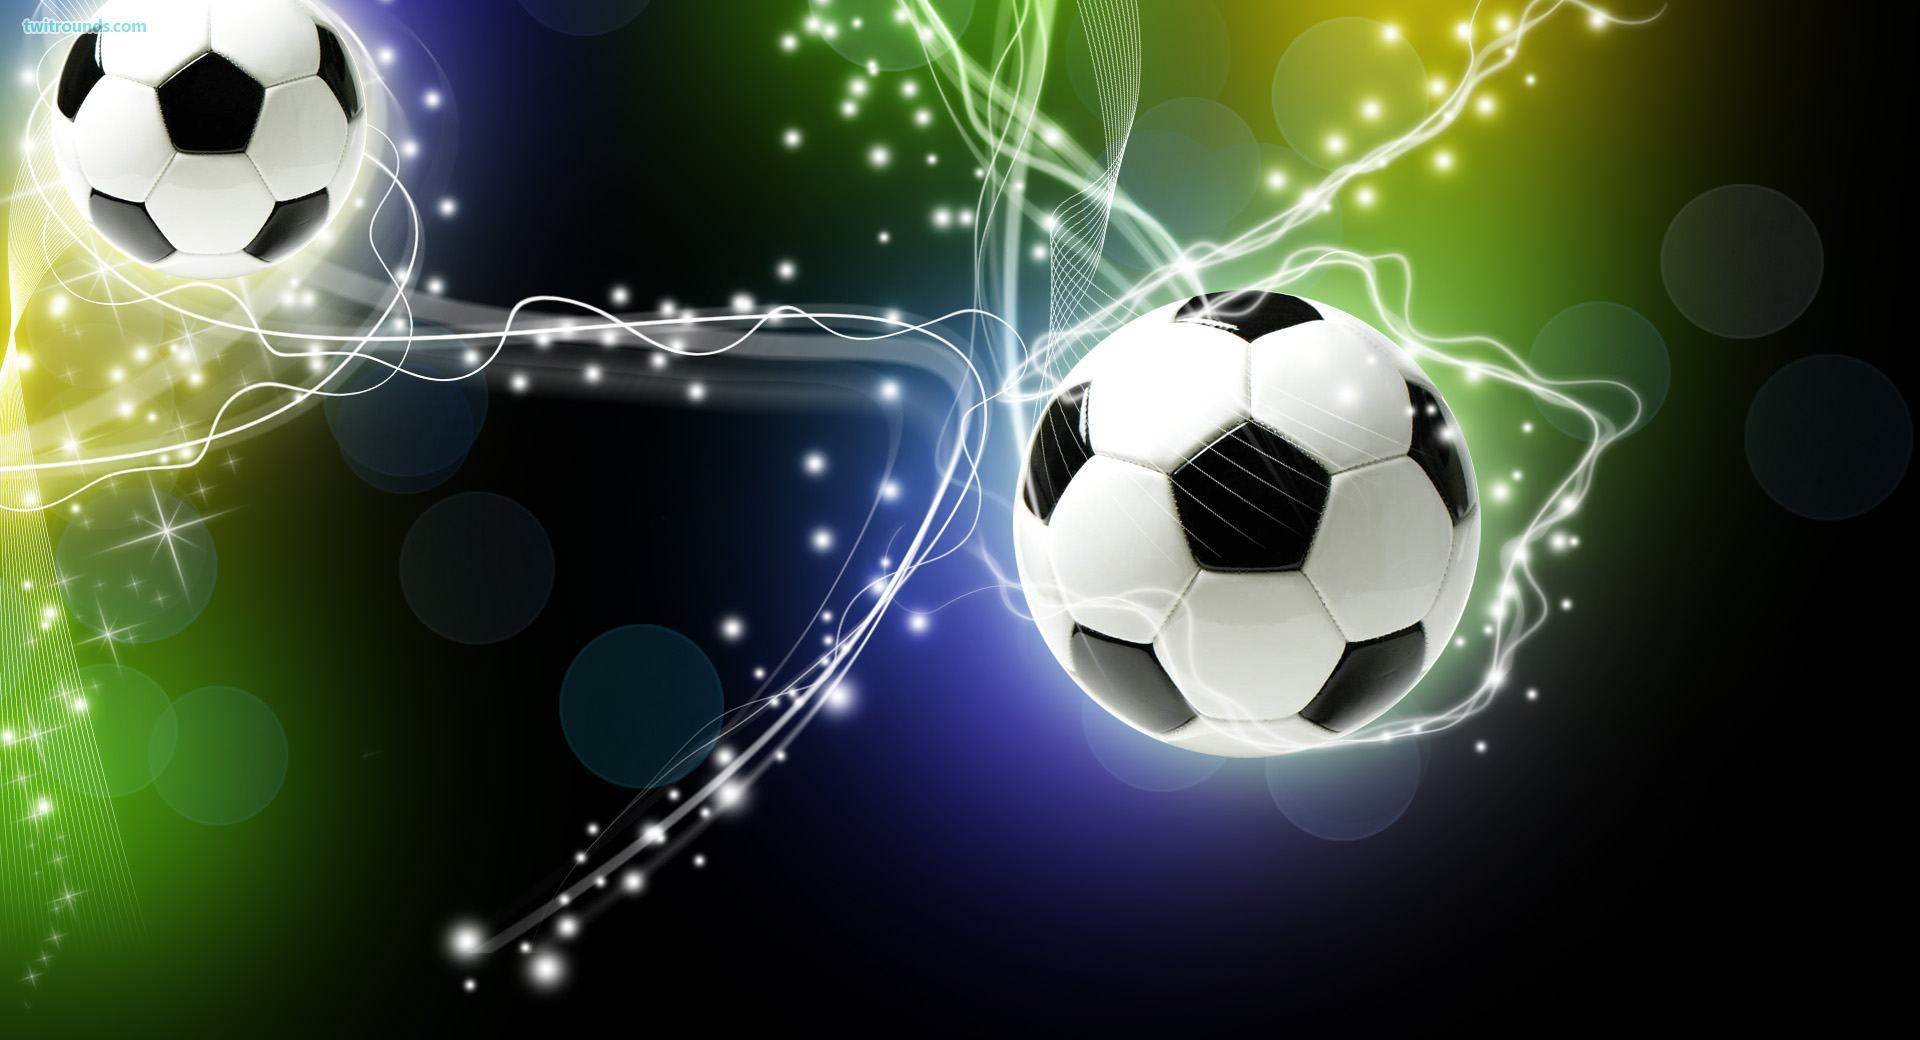 Soccer wallpaper hd 16001200 soccer wallpapers 51 wallpapers soccer wallpaper hd 16001200 soccer wallpapers 51 wallpapers adorable wallpapers voltagebd Images